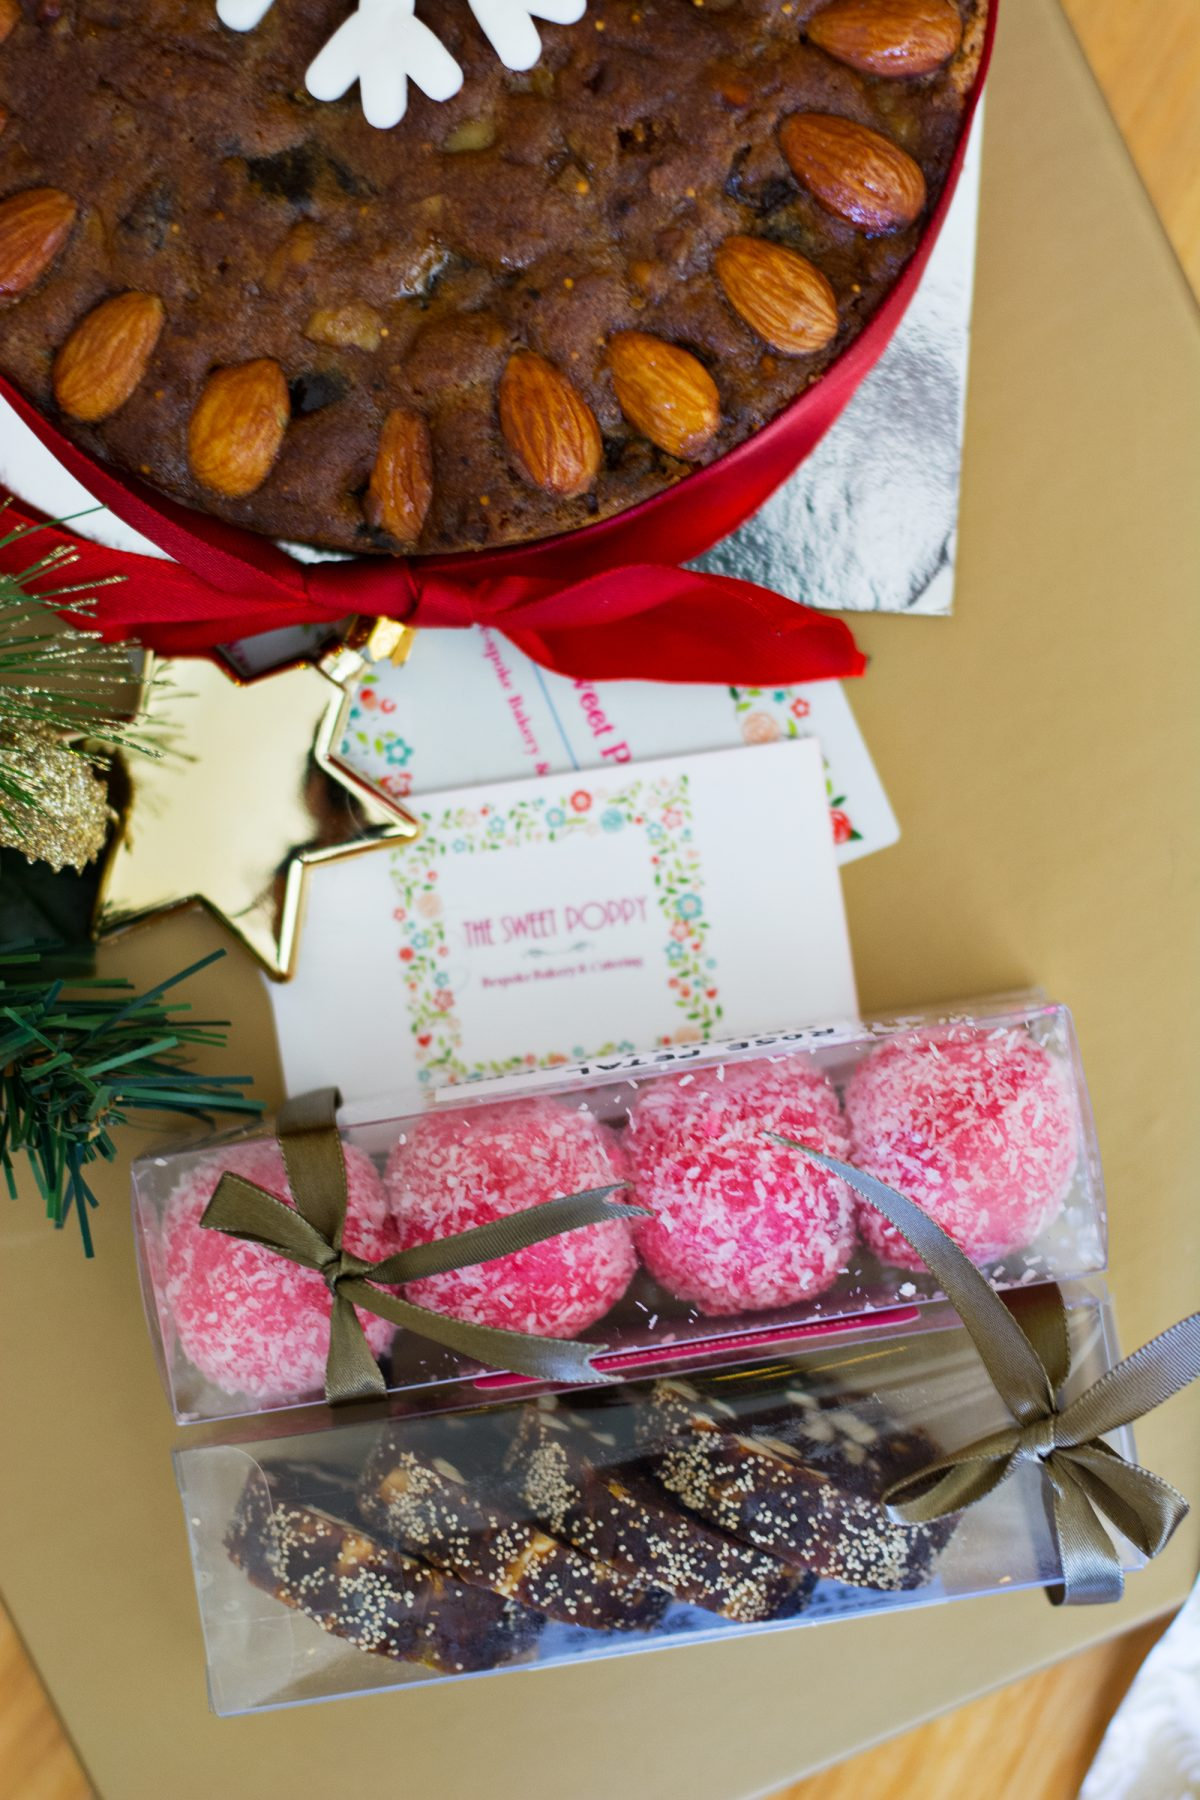 The Sweet Poppy: Be-spoke Bakery, Catering and Gourmet Hampers - thespiceadventuress.com